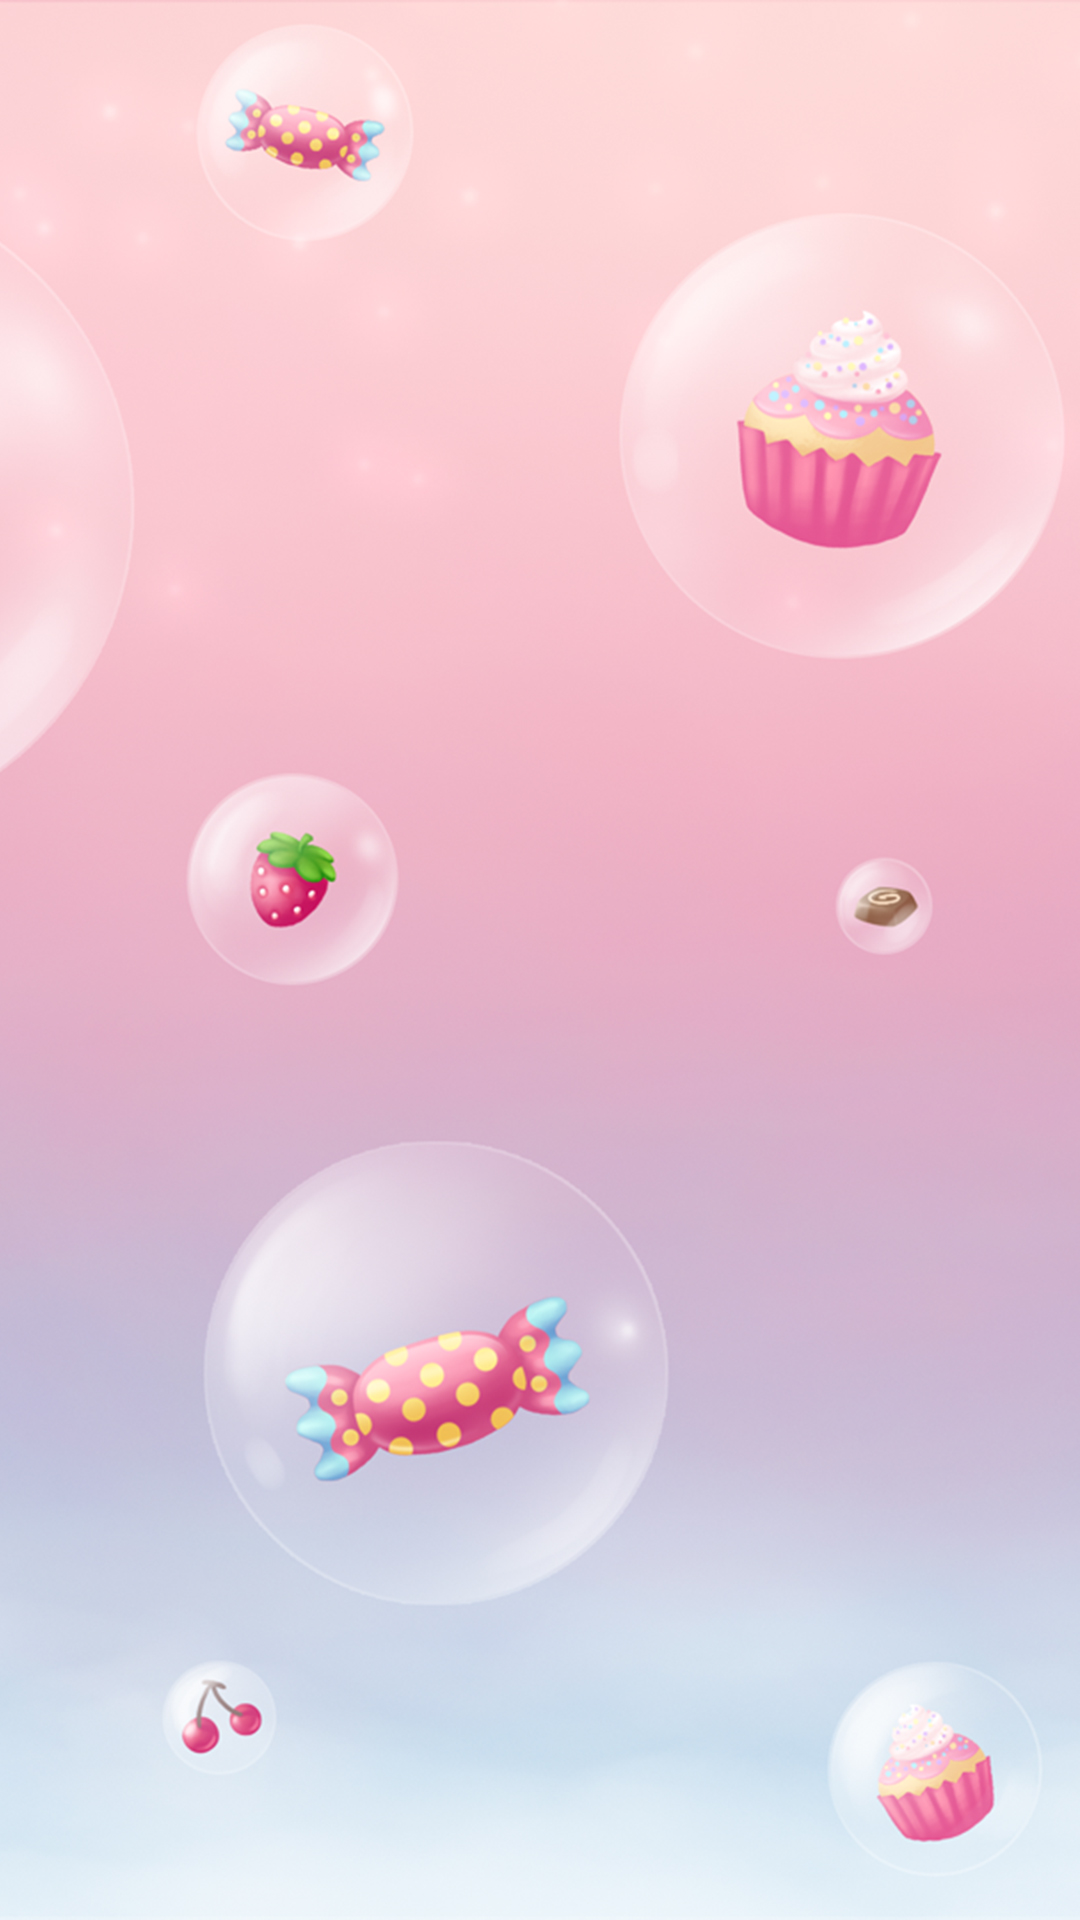 Girly Cute Iphone6s Wallpaper Cupcakes Iphone Wallpaper